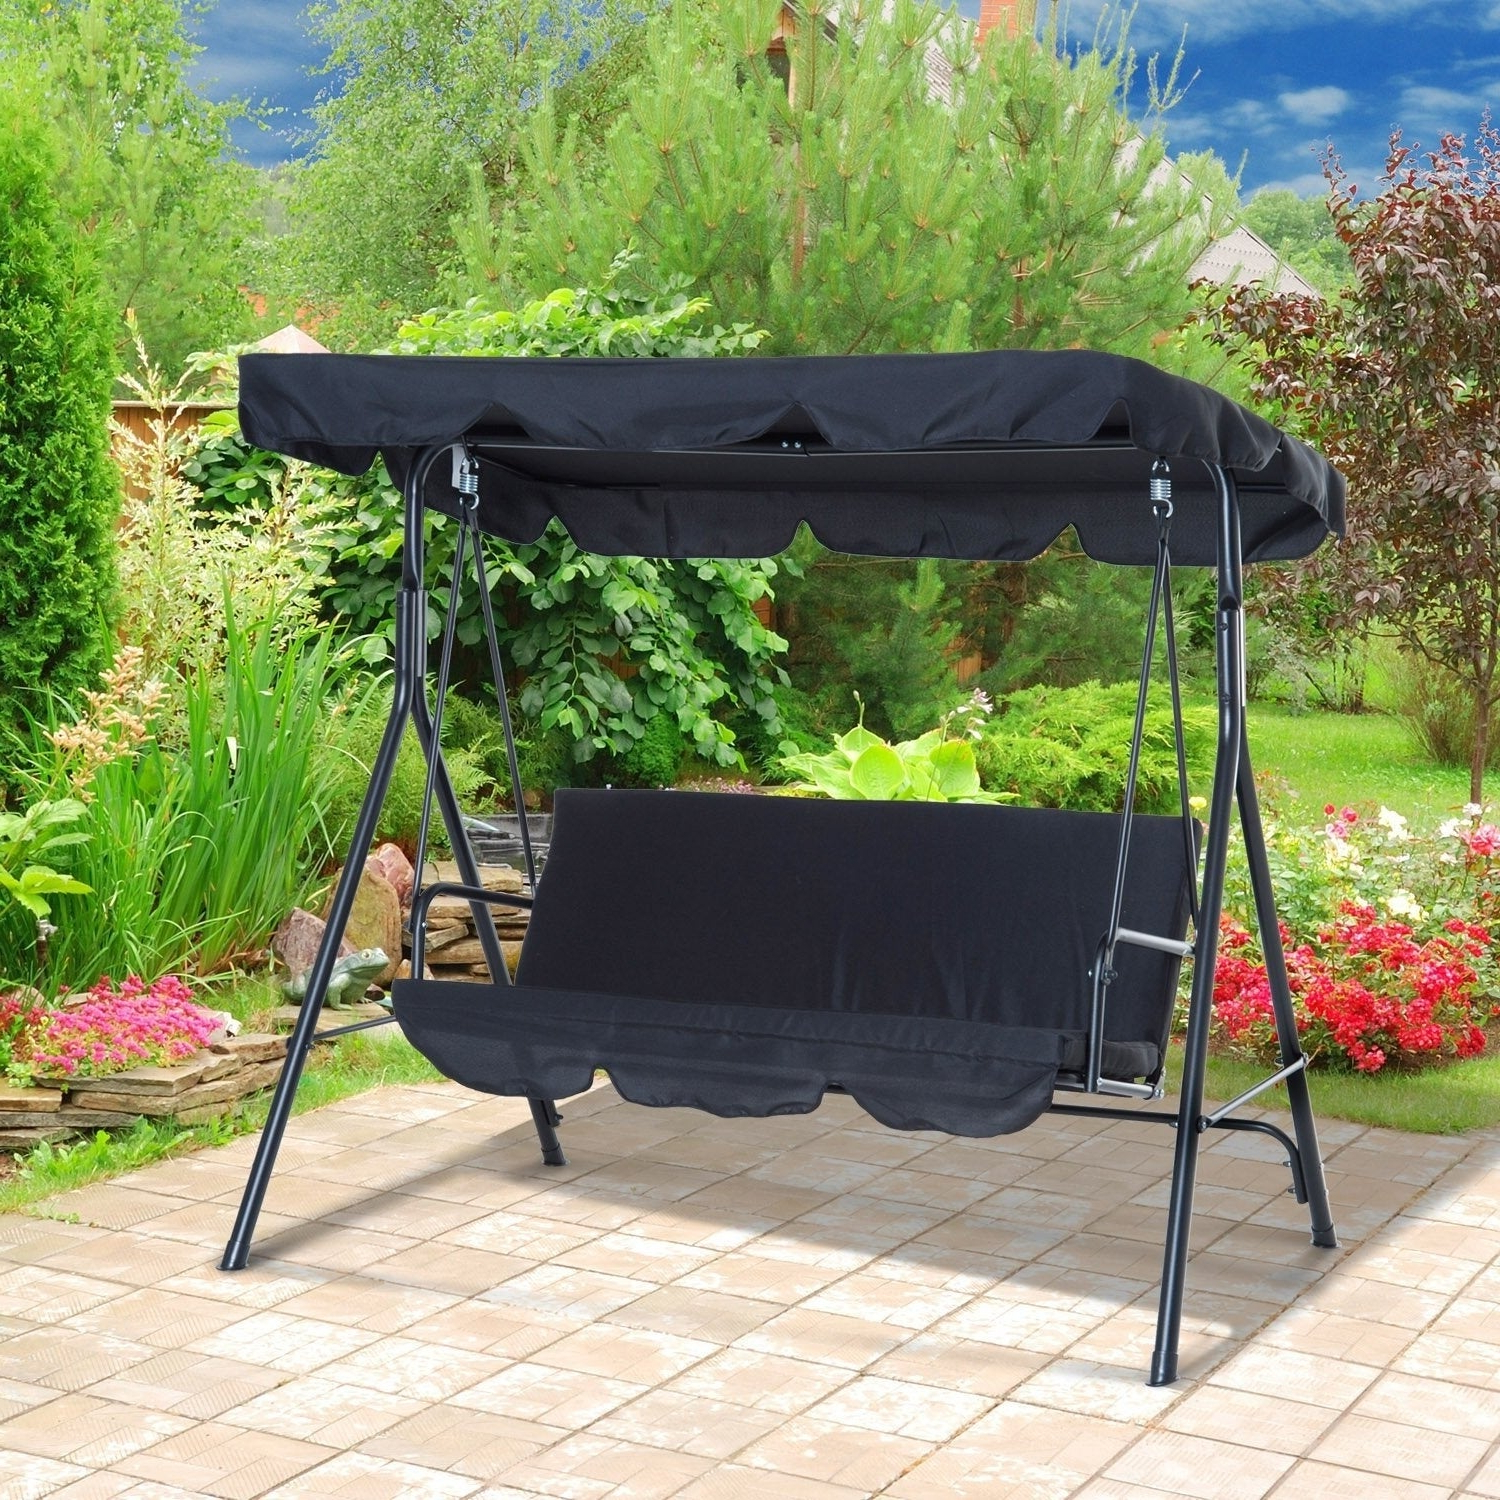 3 Person Outdoor Porch Swings With Stand With Best And Newest Outsunny 3 Person Steel Fabric Outdoor Porch Swing Canopy With Stand – Black (View 22 of 25)